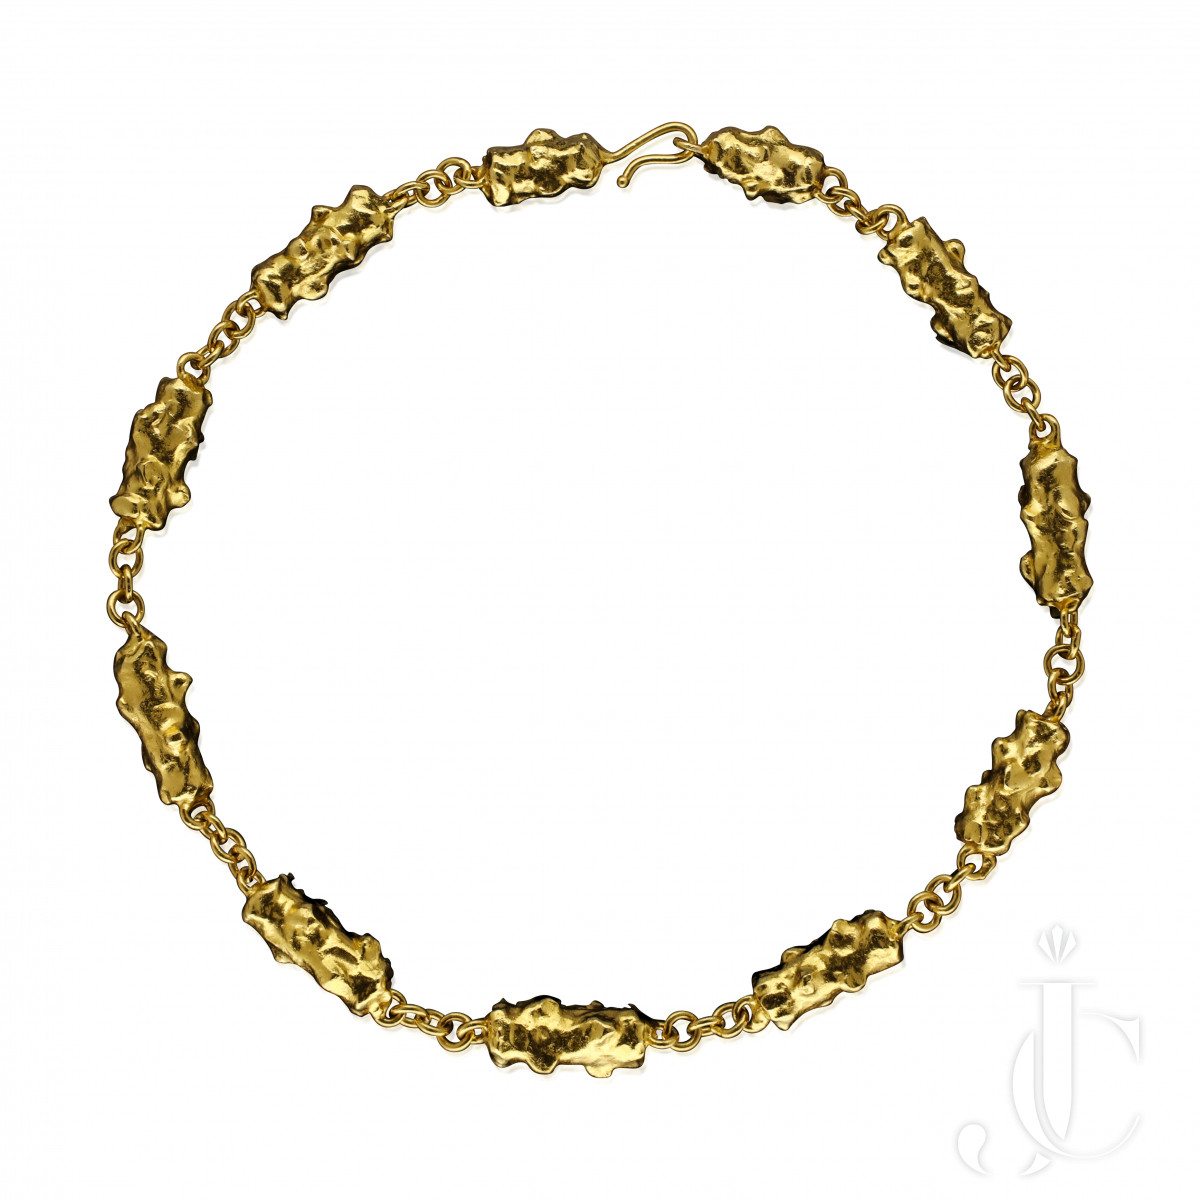 Jean Mahie - 22ct Gold Nugets necklace c.1970s